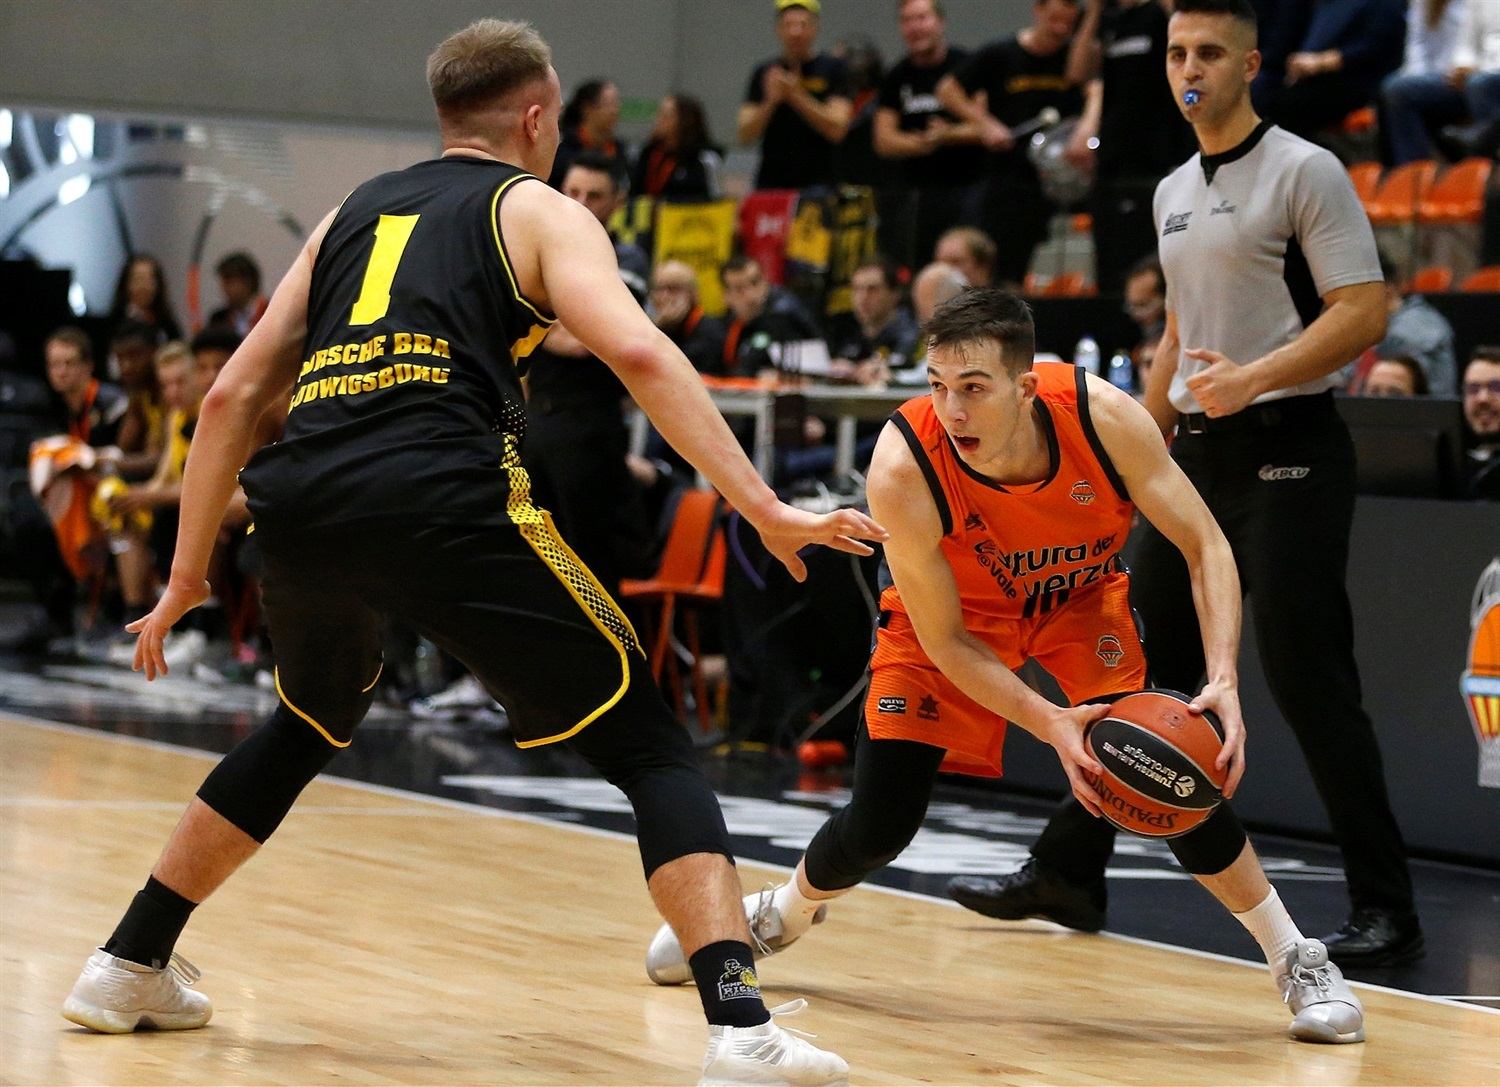 Marc Garcia - U18 Valencia Basket (photo Miguel Angel Polo - Valencia) - JT18